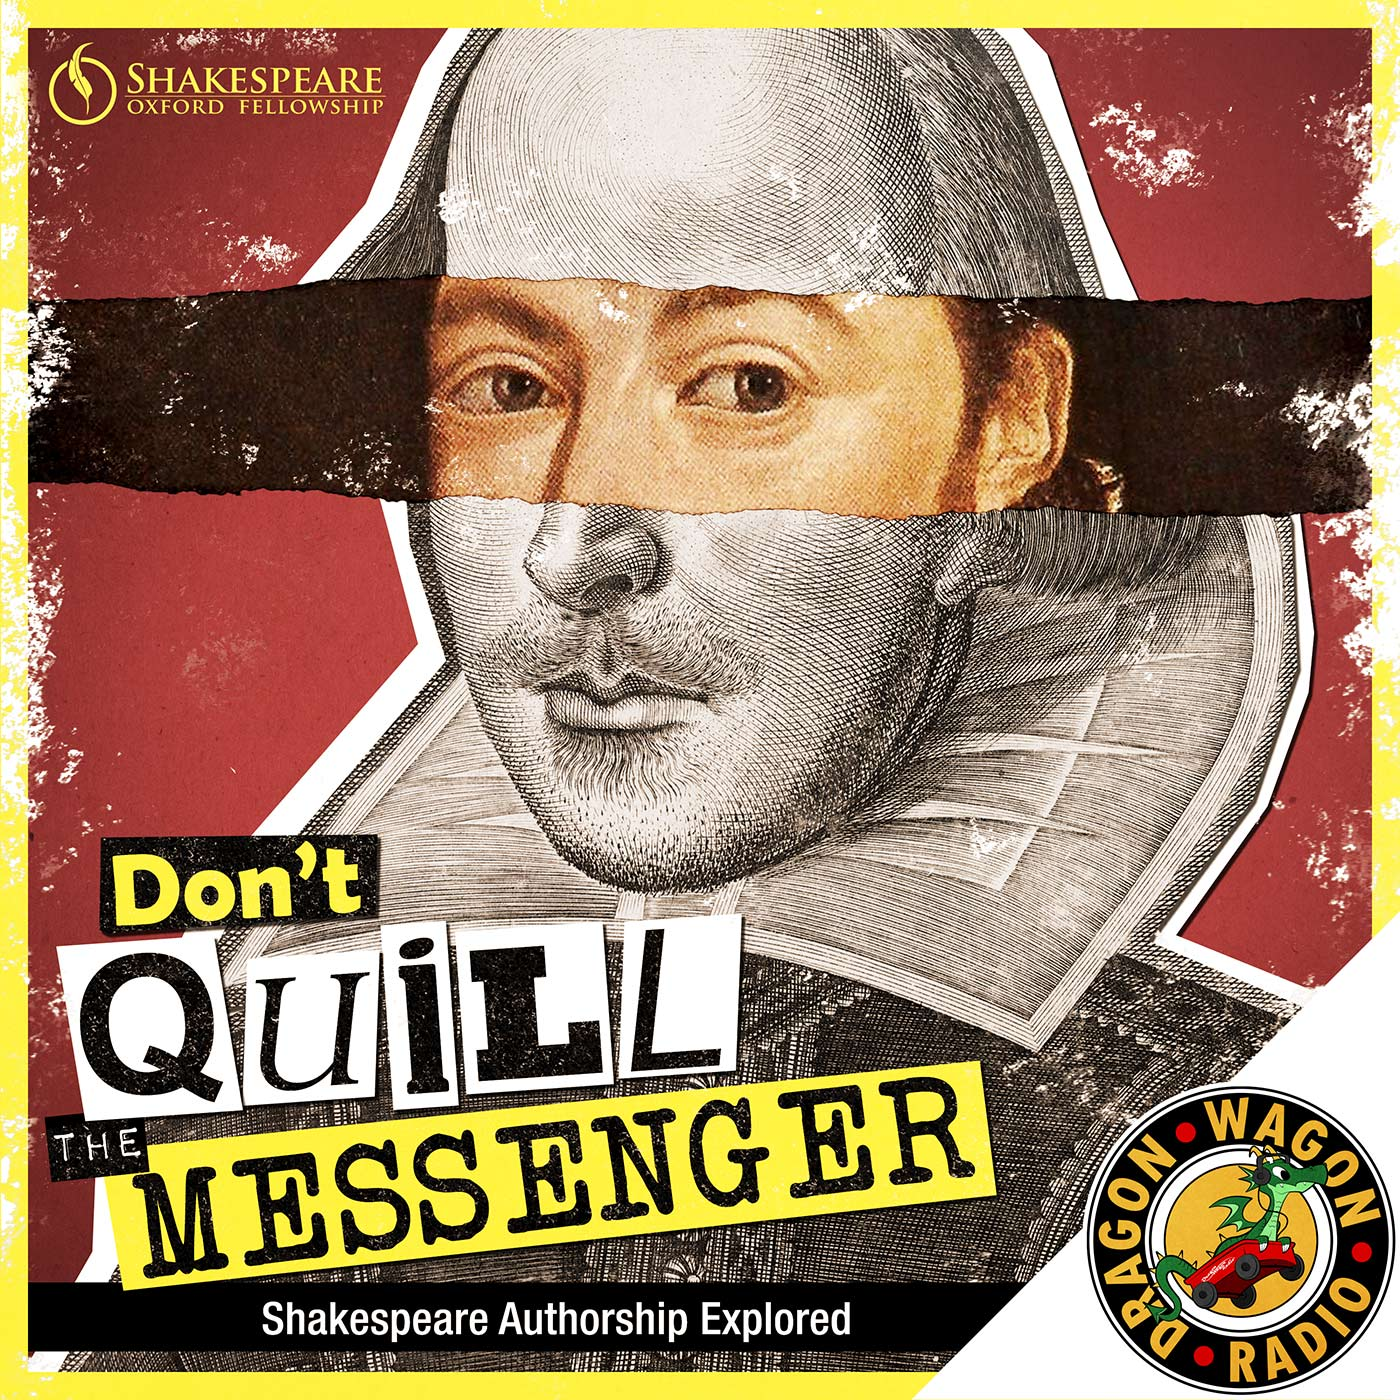 Don't Quill the Messenger : Shakespeare Authorship Explored show art